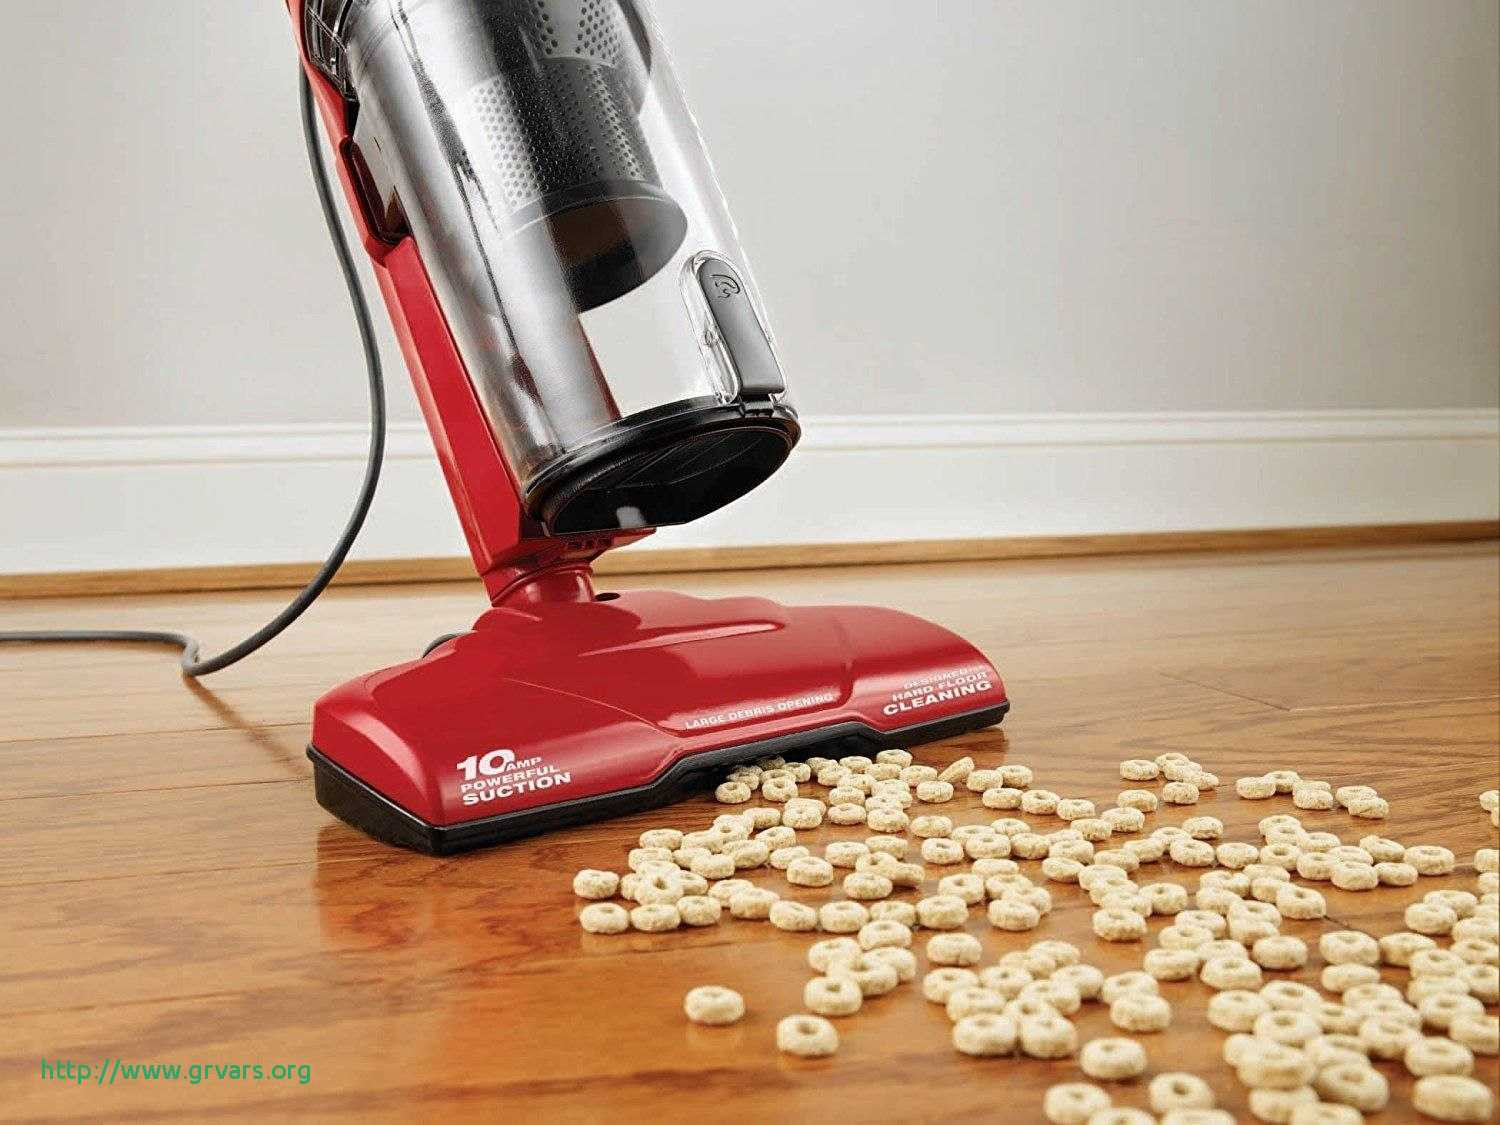 Good Vacuum for Hardwood Floors Of Good Vacuum for Carpet and Hardwood Floor Beau 24 Nice Best area with Regard to Good Vacuum for Carpet and Hardwood Floor Frais Best Bagless Vacuum for Hardwood Floors Podemosleganes